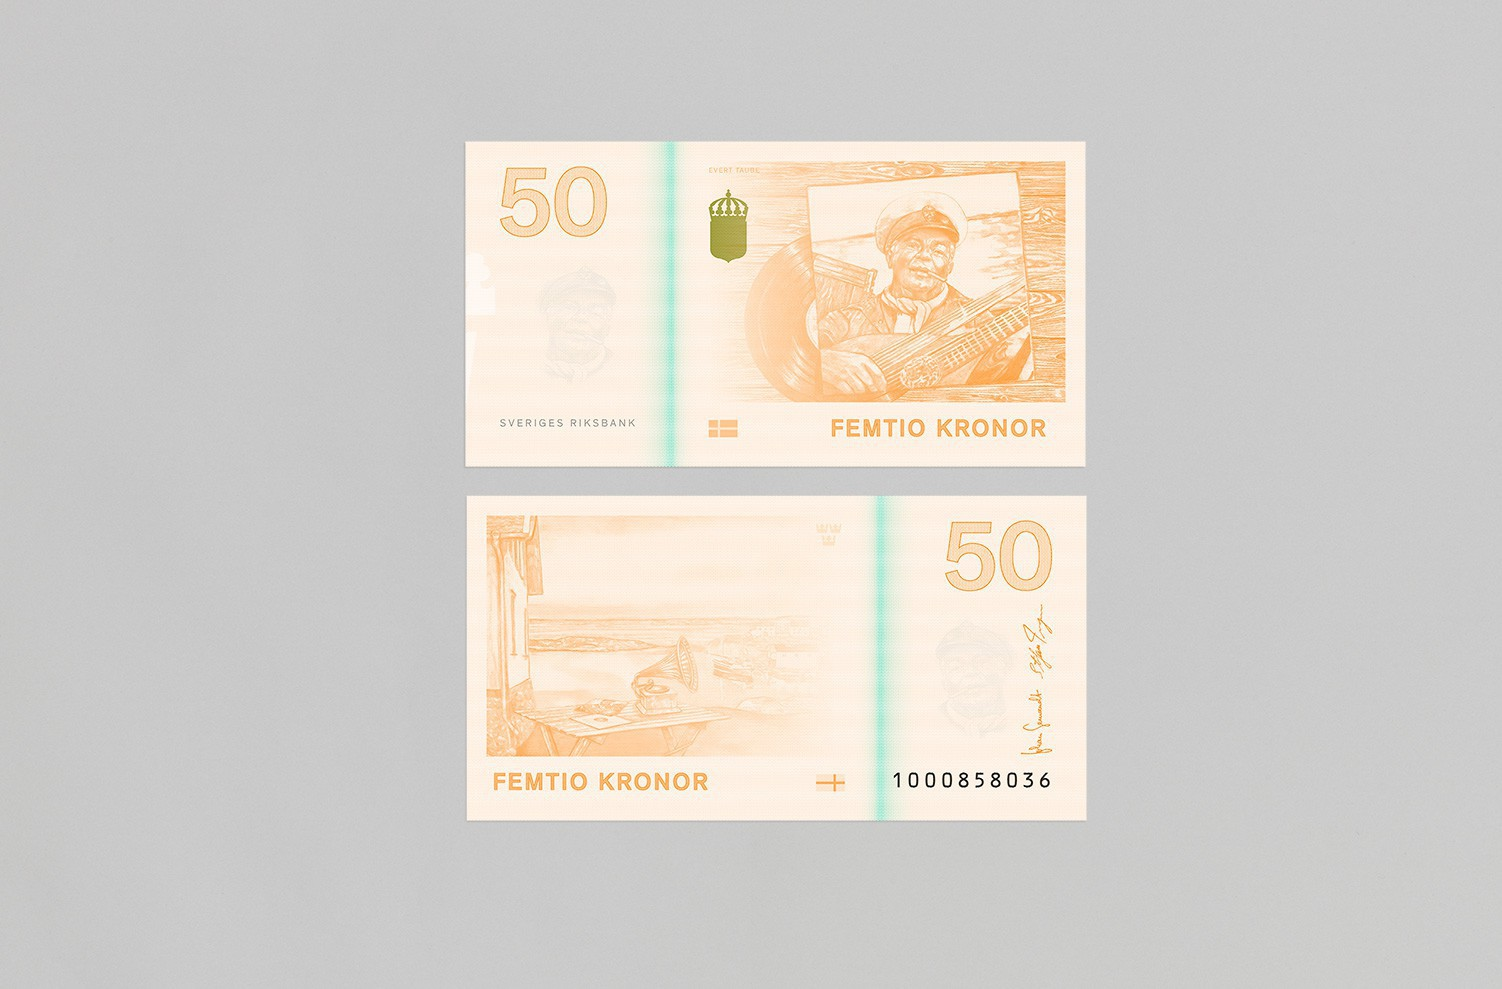 ritator_the_central_bank_of_sweden_banknotes_3